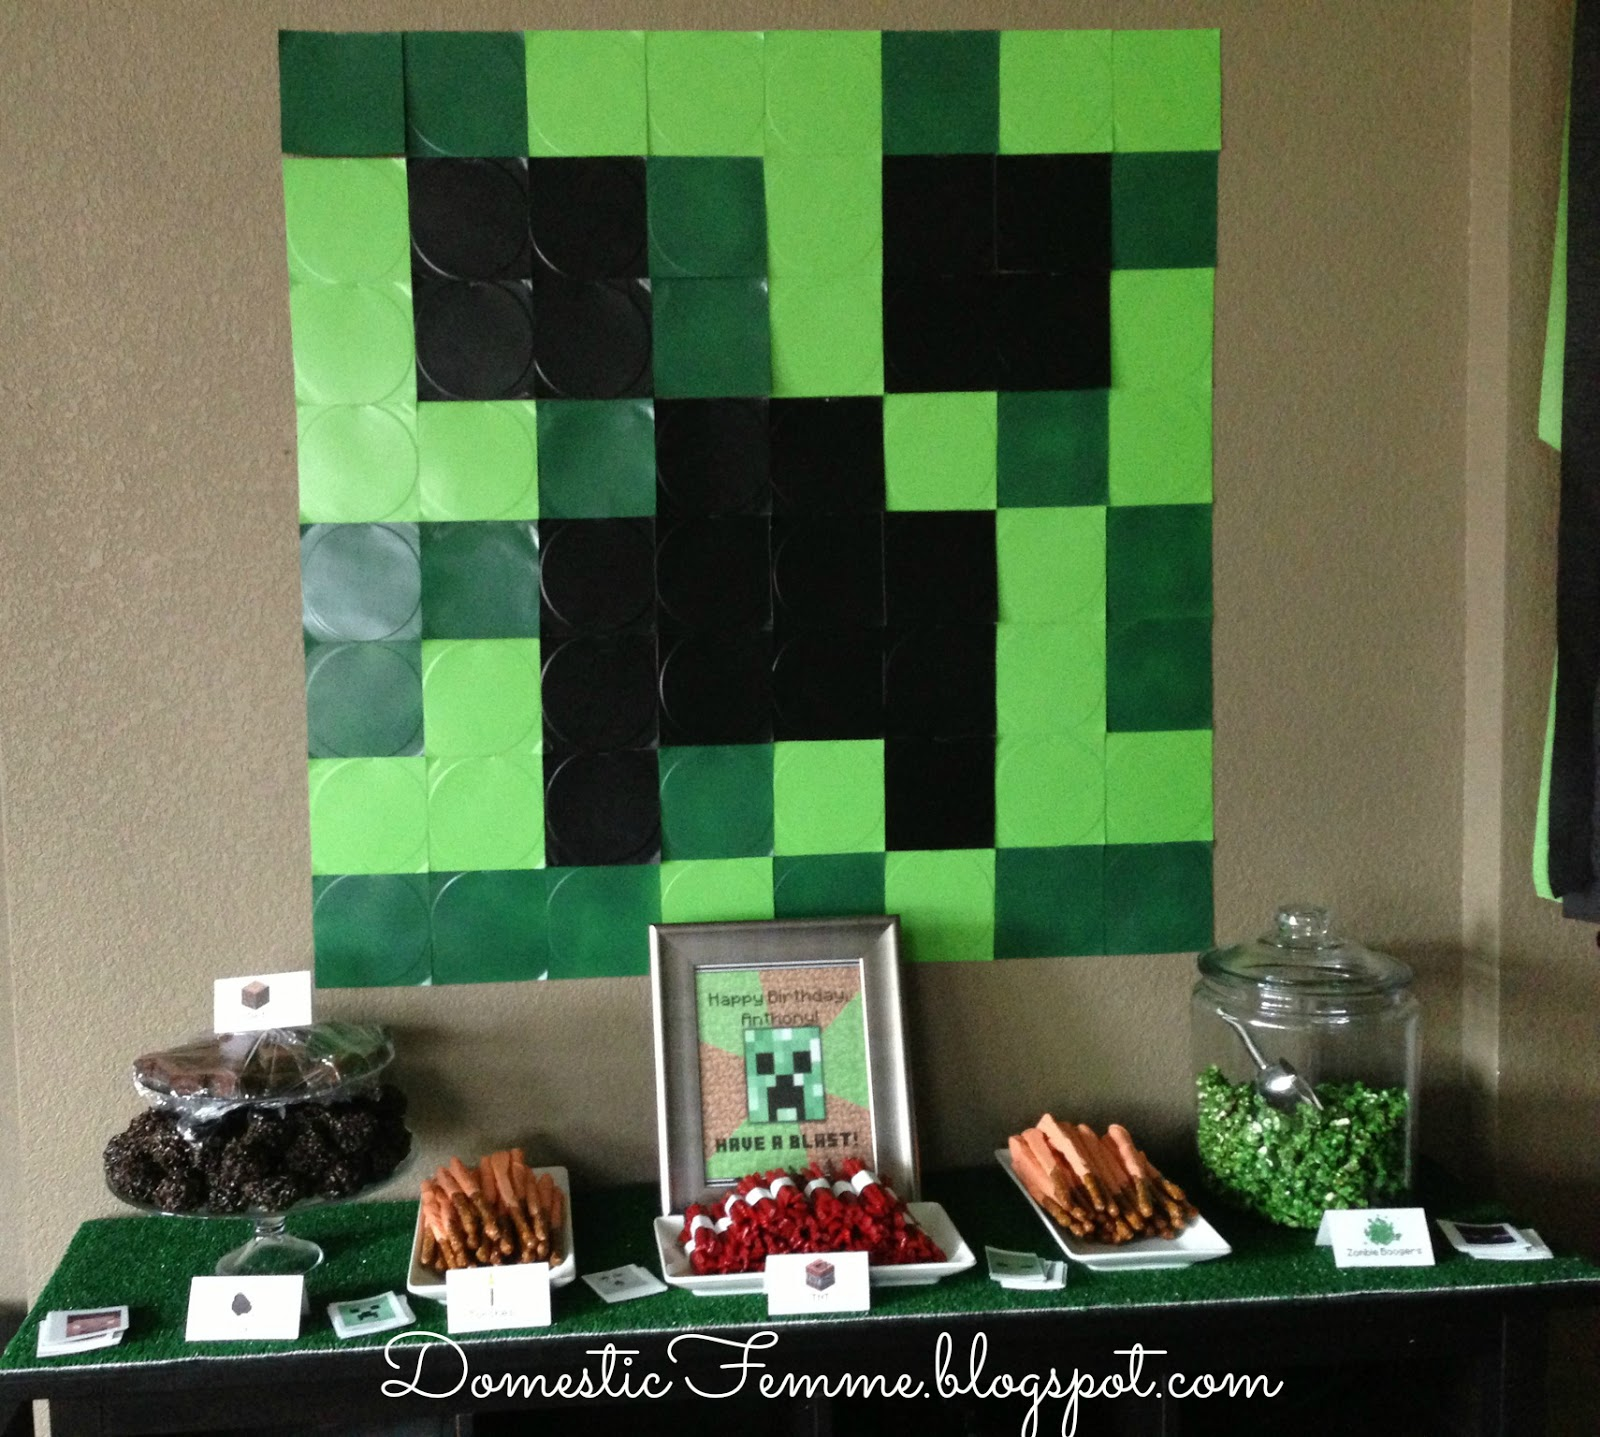 Mine craft birthday ideas - Minecraft Birthday Party Table Display Parties Birthdays Diy Character Characters